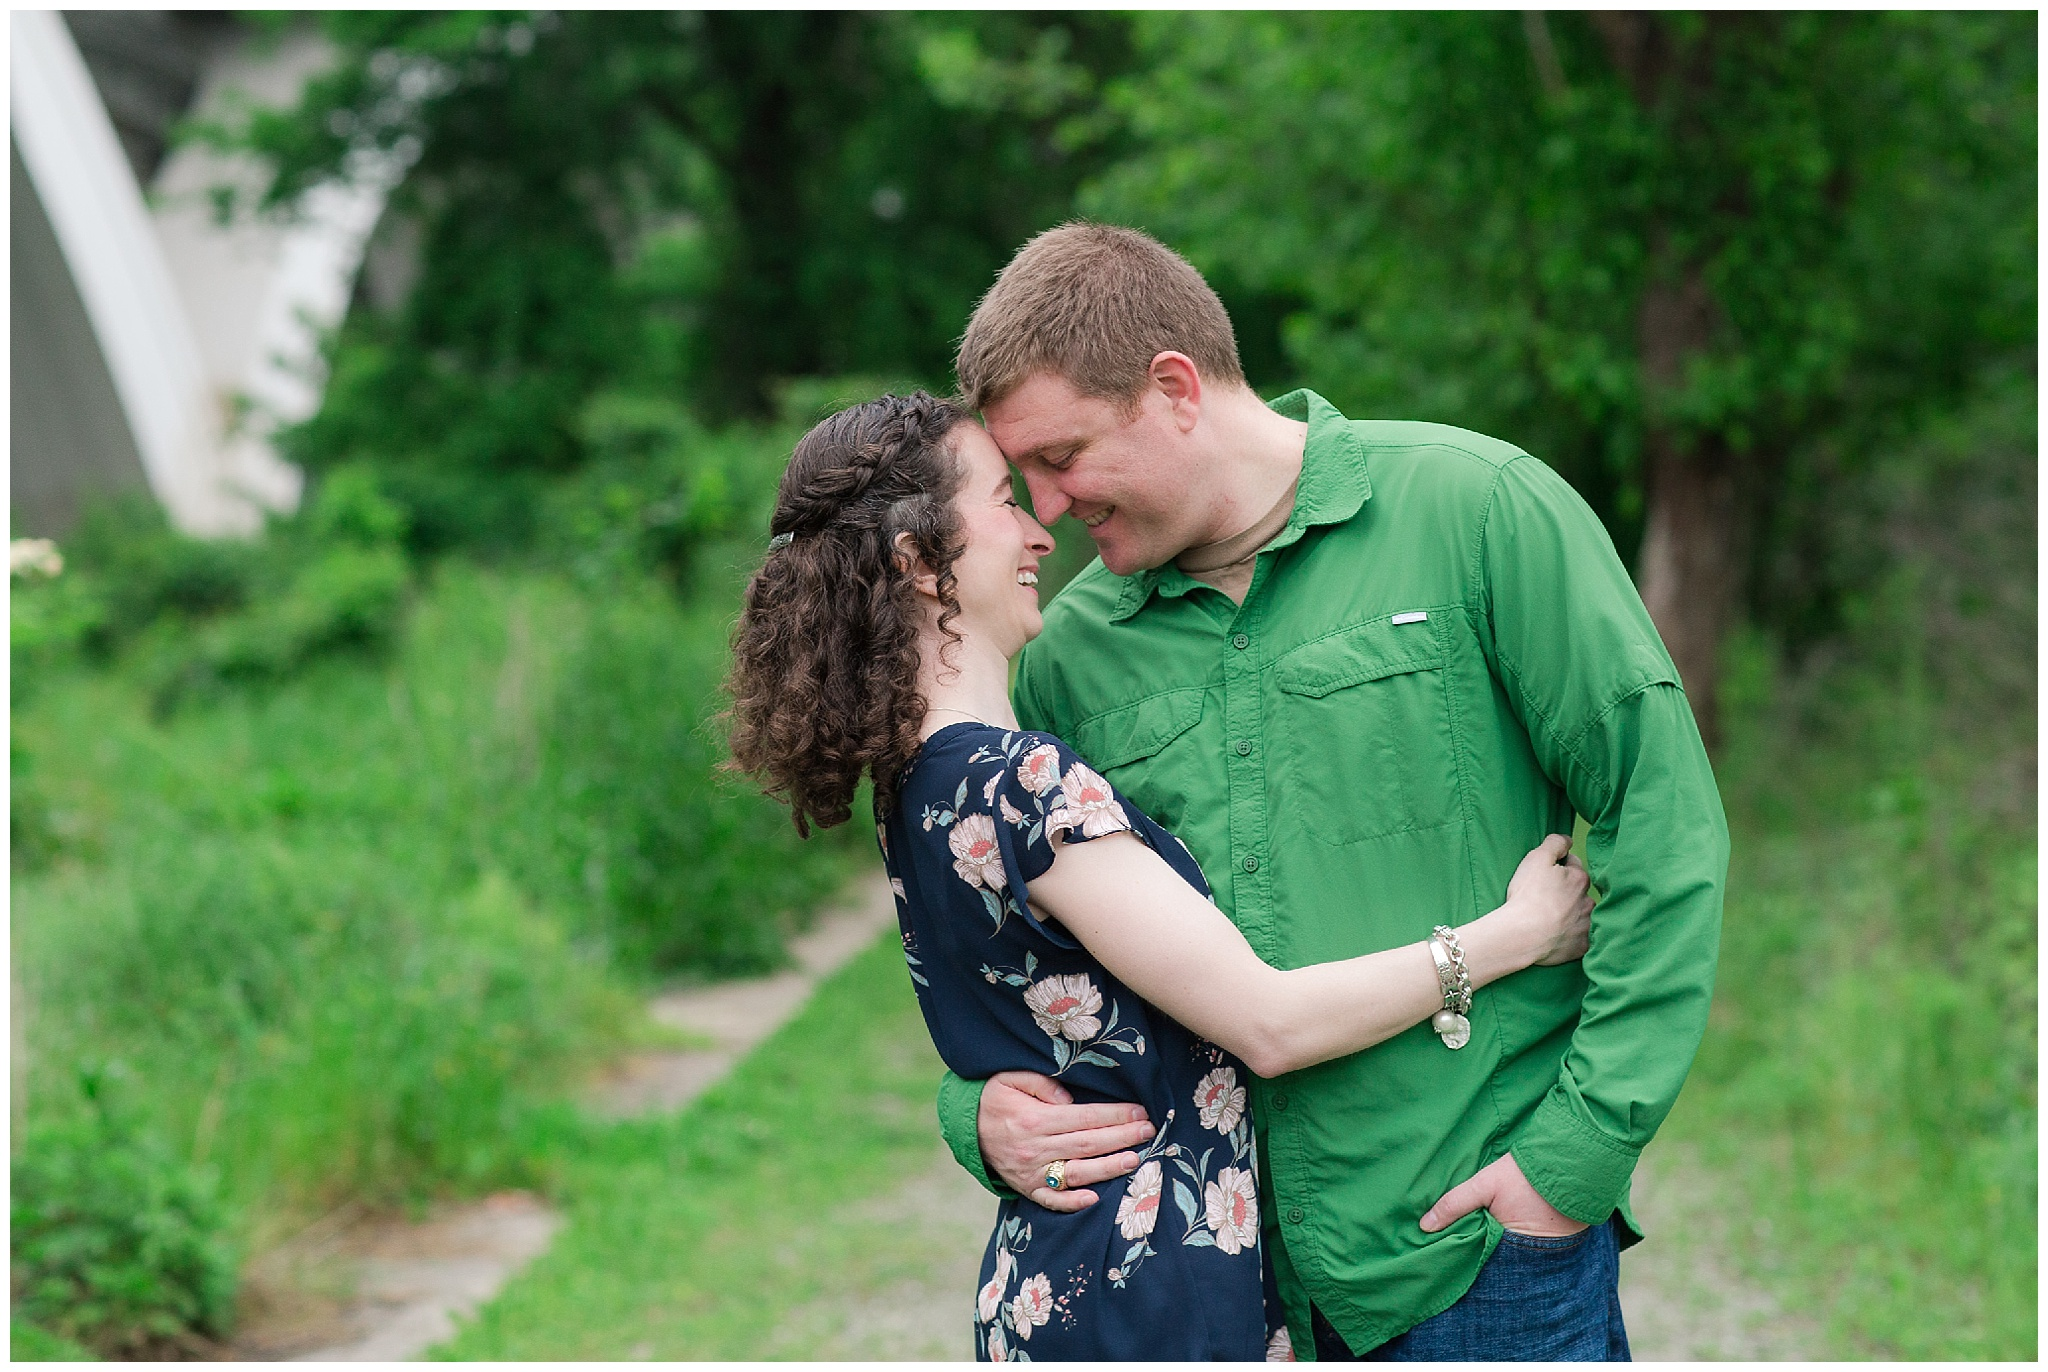 engagement_session_detweiler_0004.jpg